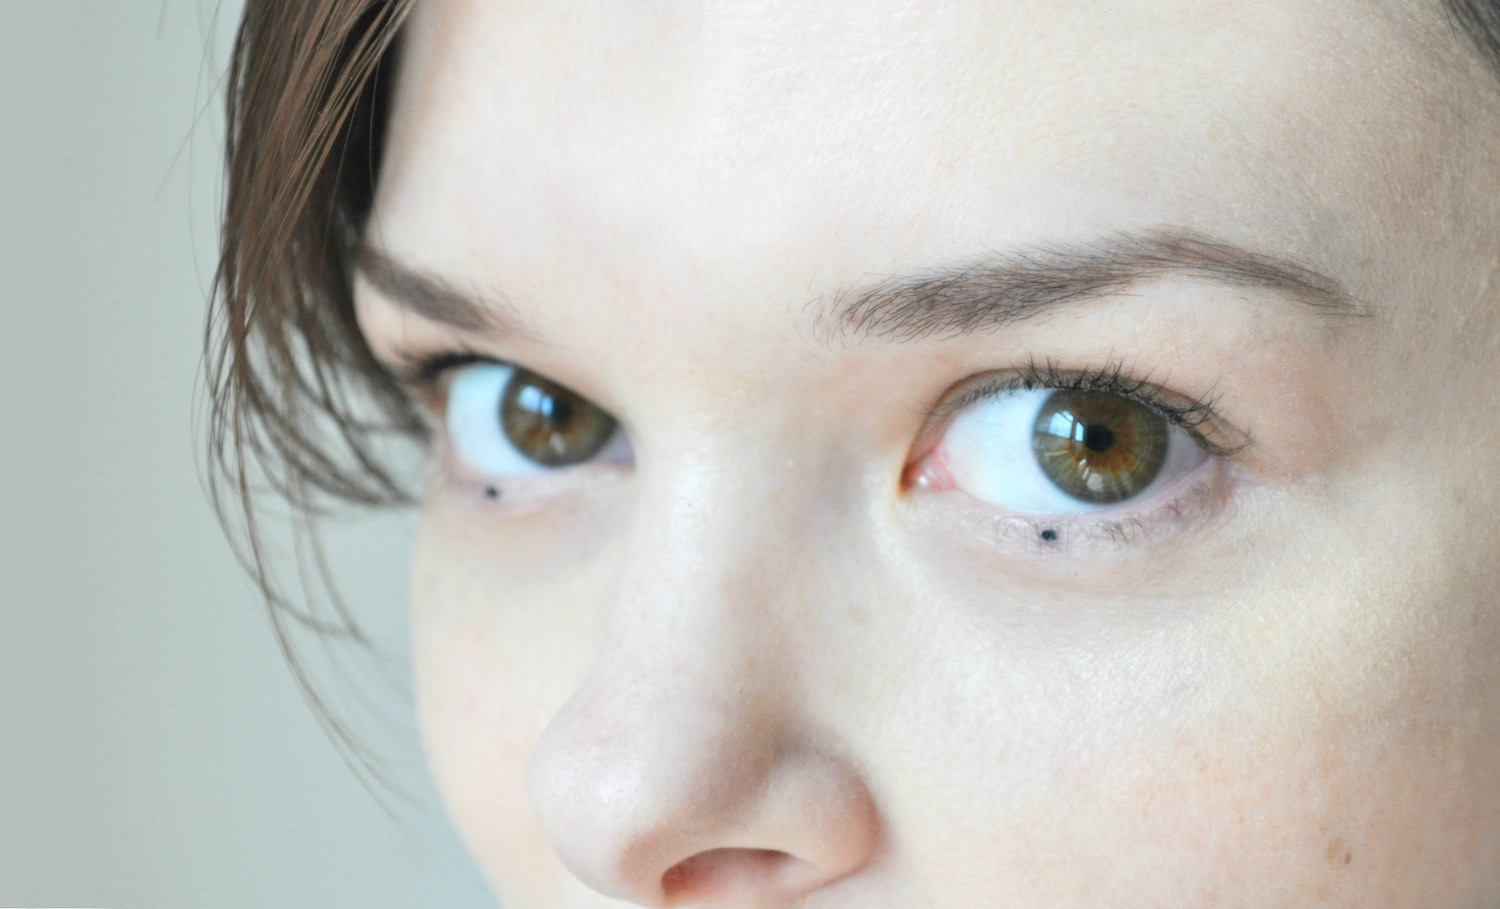 Eyelid tattoos for Morgan tattrx by Indy Voet